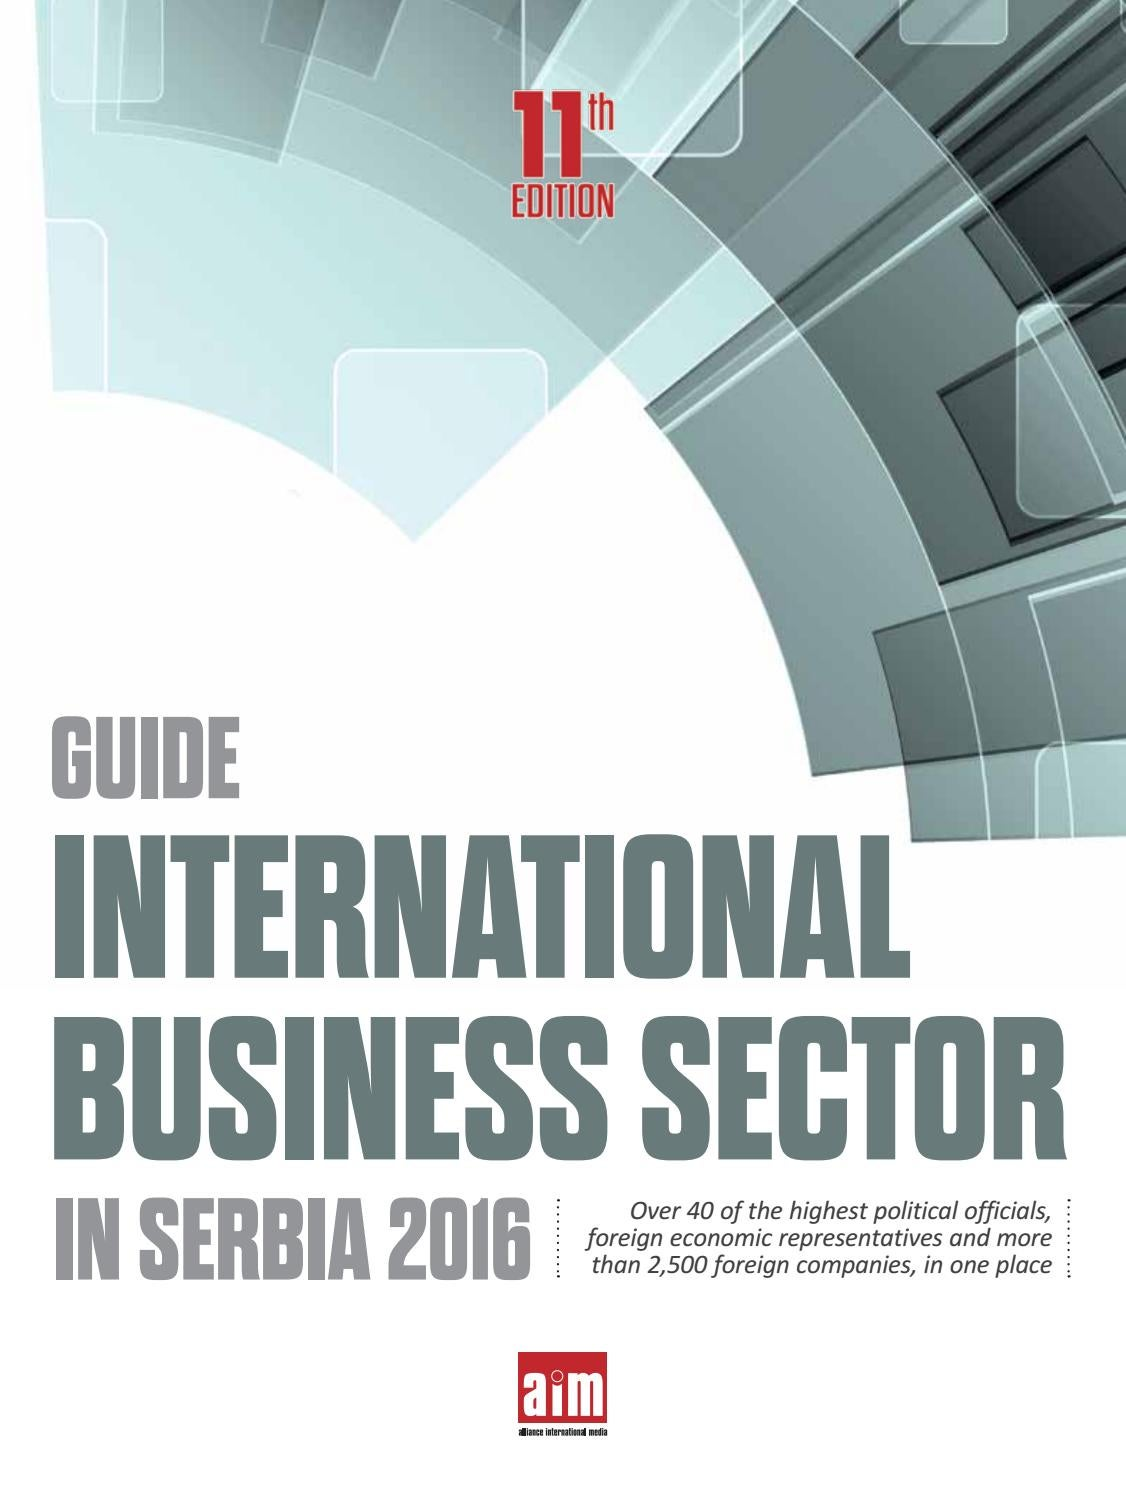 Adecco Salon De Provence International Business Sector In Serbia 2016